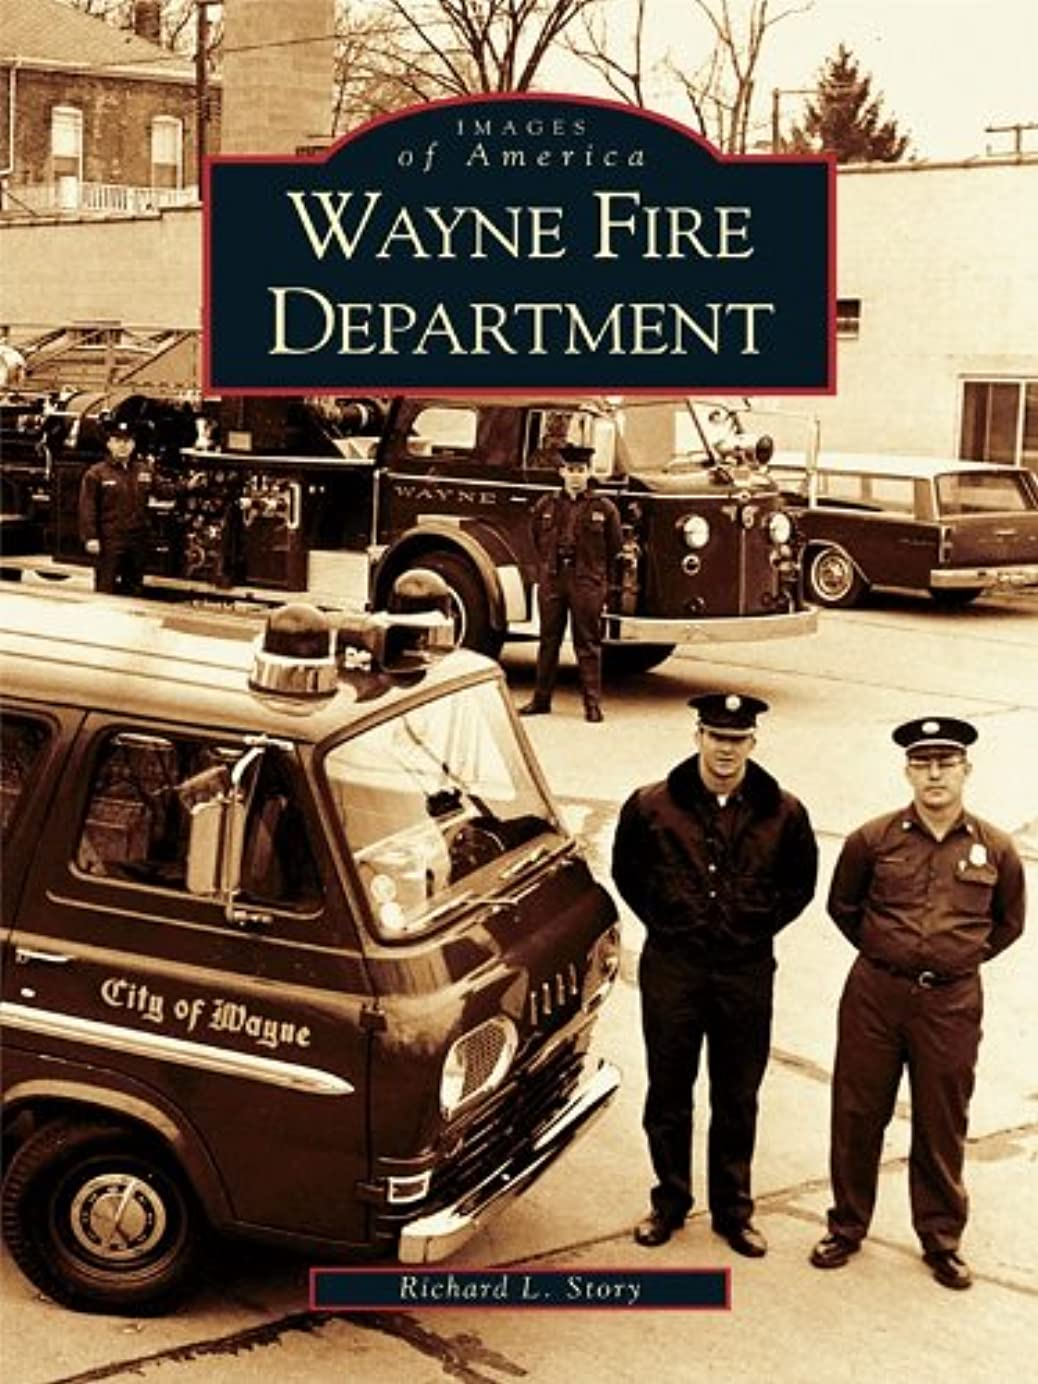 説明的ドラッグ見かけ上Wayne Fire Department (Images of America) (English Edition)